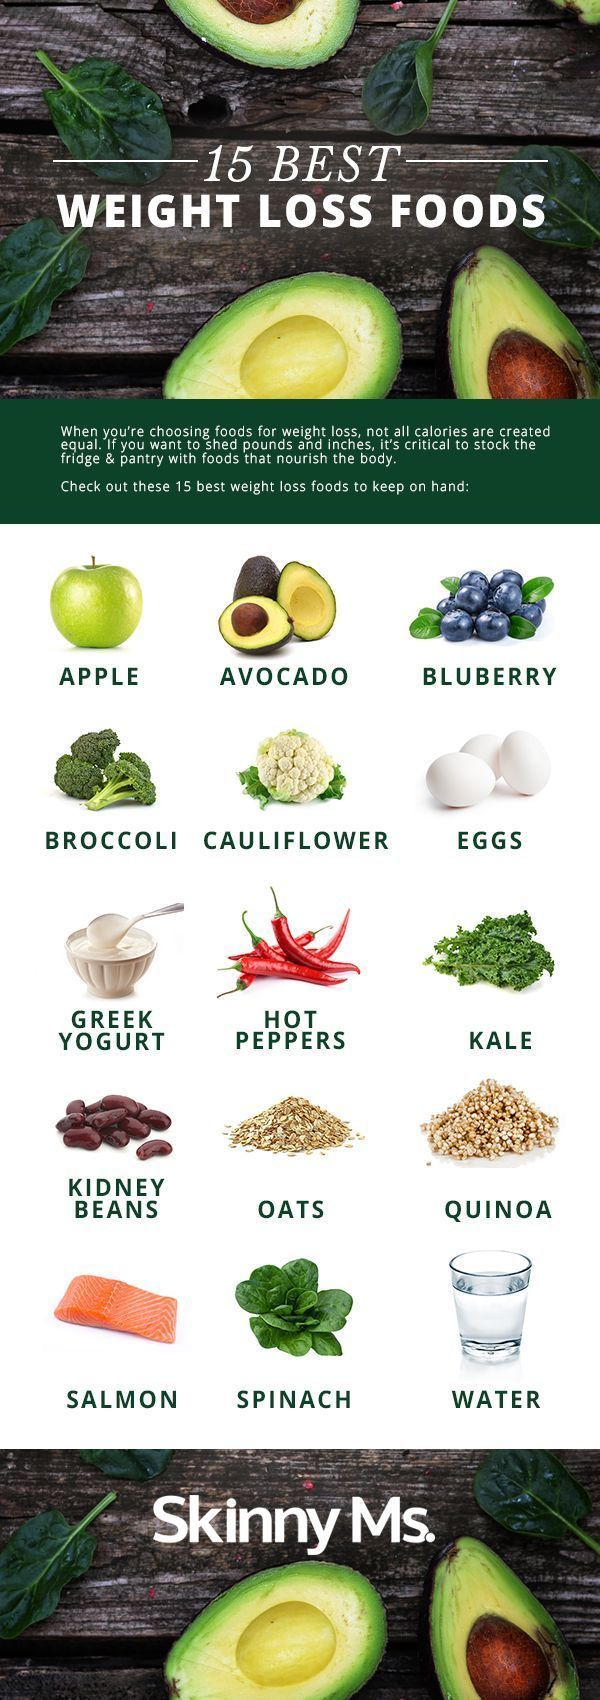 Best meal supplements for weight loss image 6